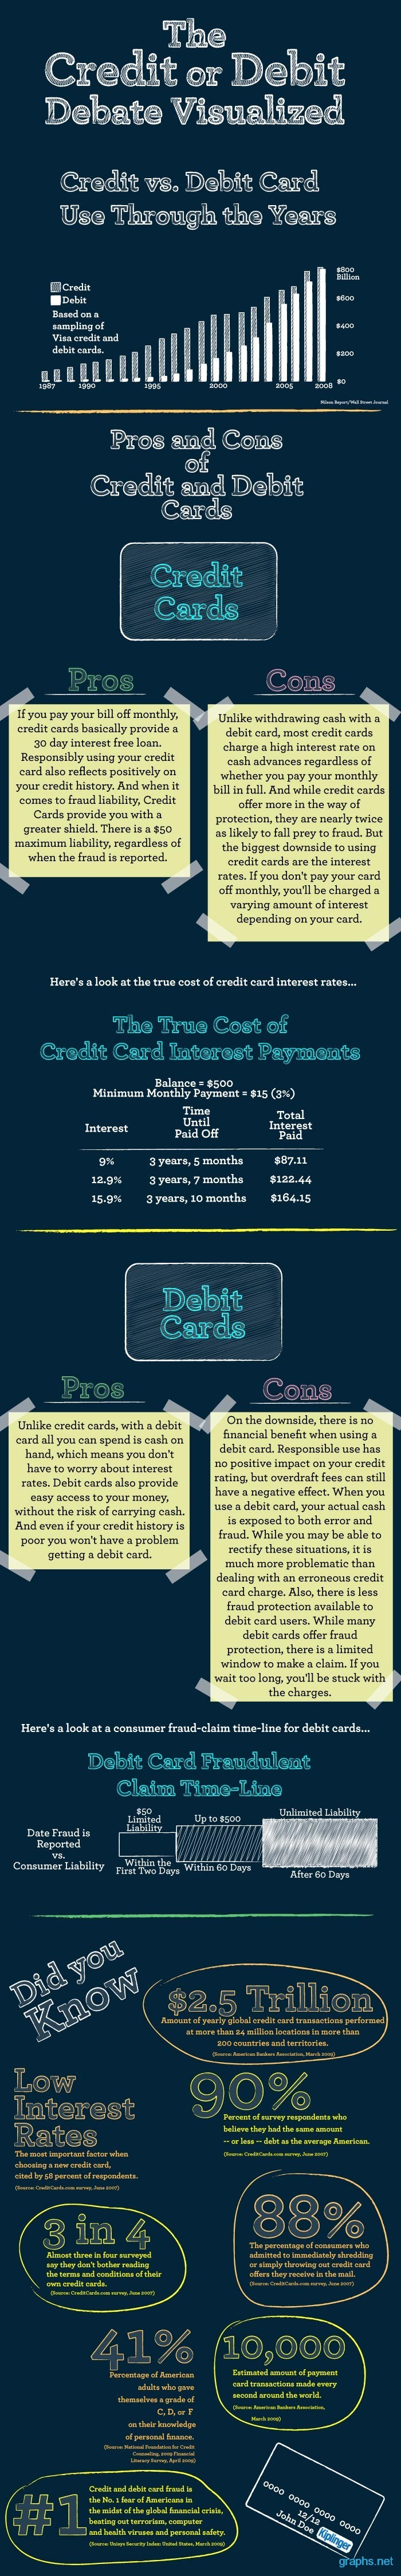 Pros and Cons of Debit Card and Credit Card